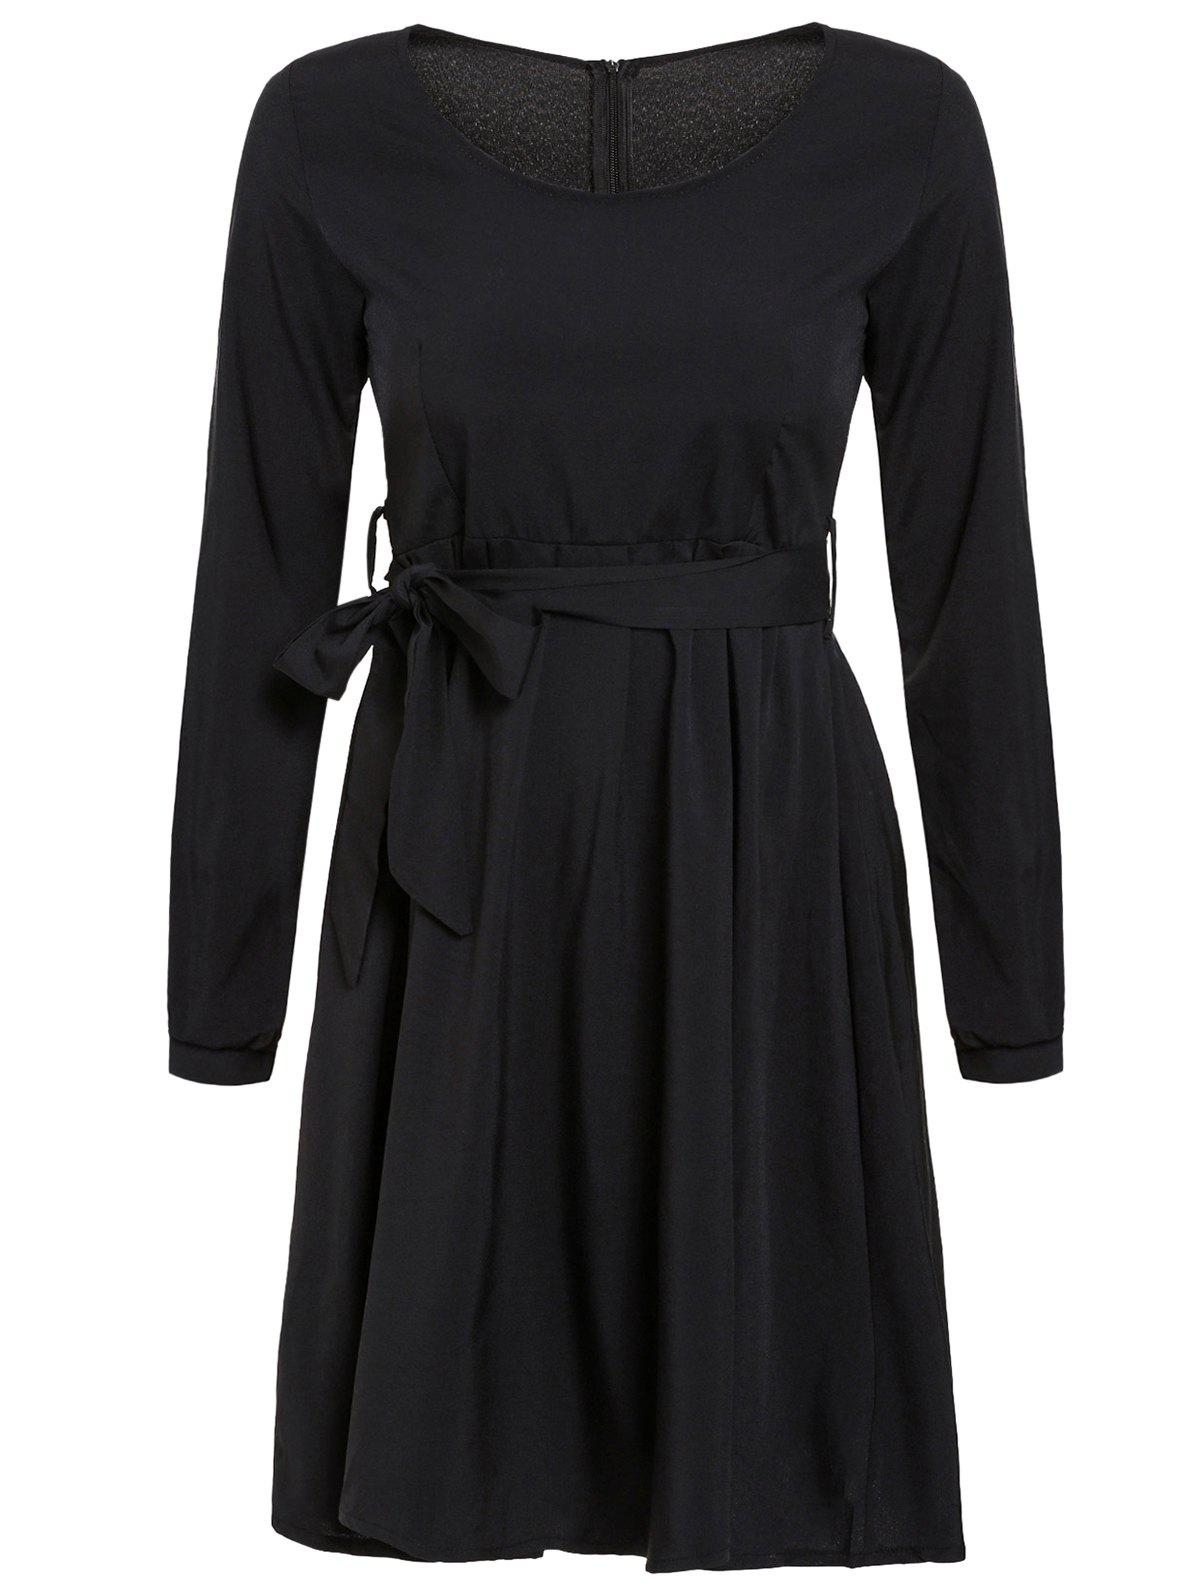 Stylish Jewel Neck 3/4 Sleeve Pocket Design Solid Color Women's Dress - 2XL BLACK